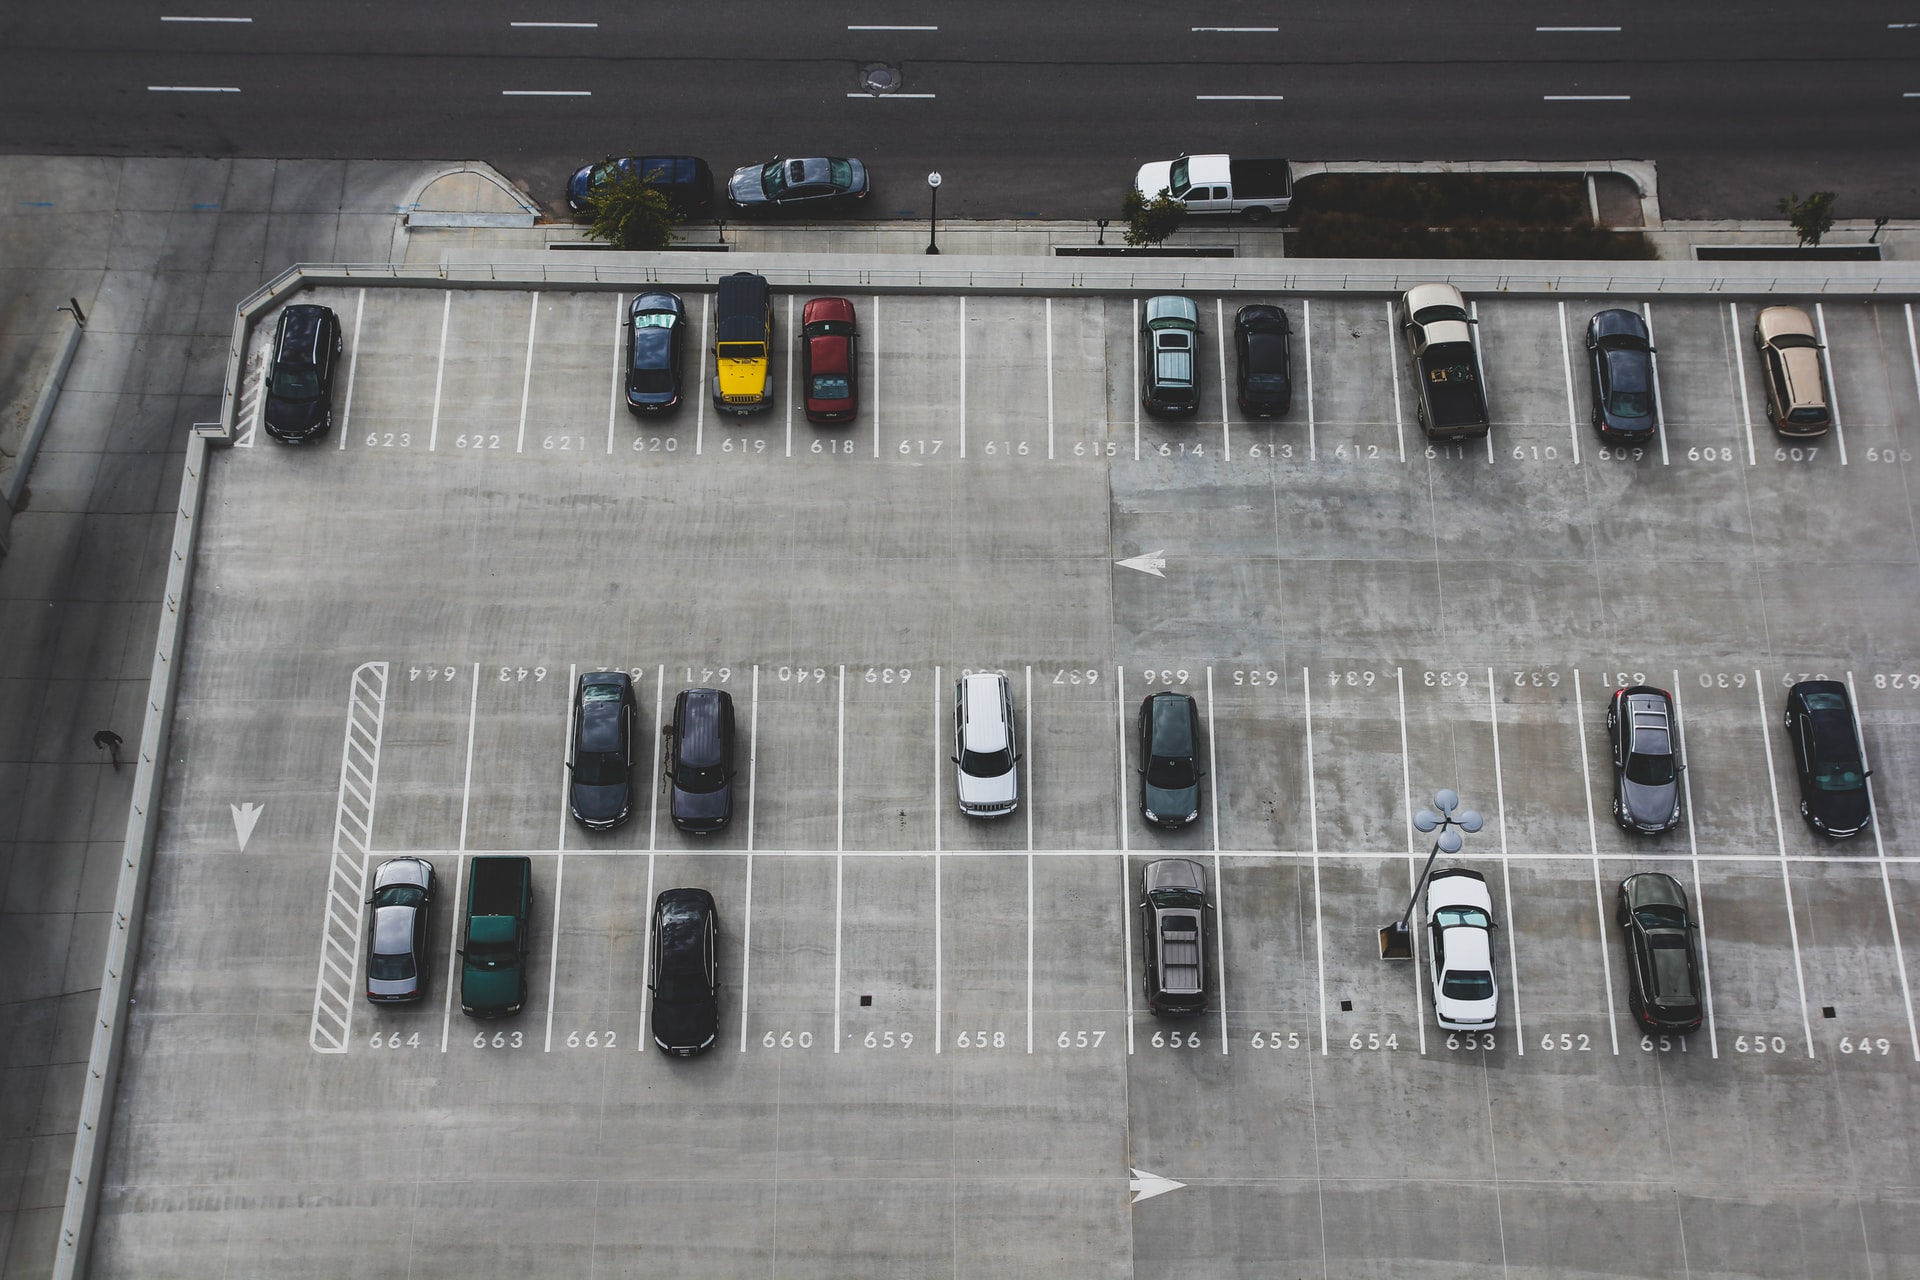 the private parking market